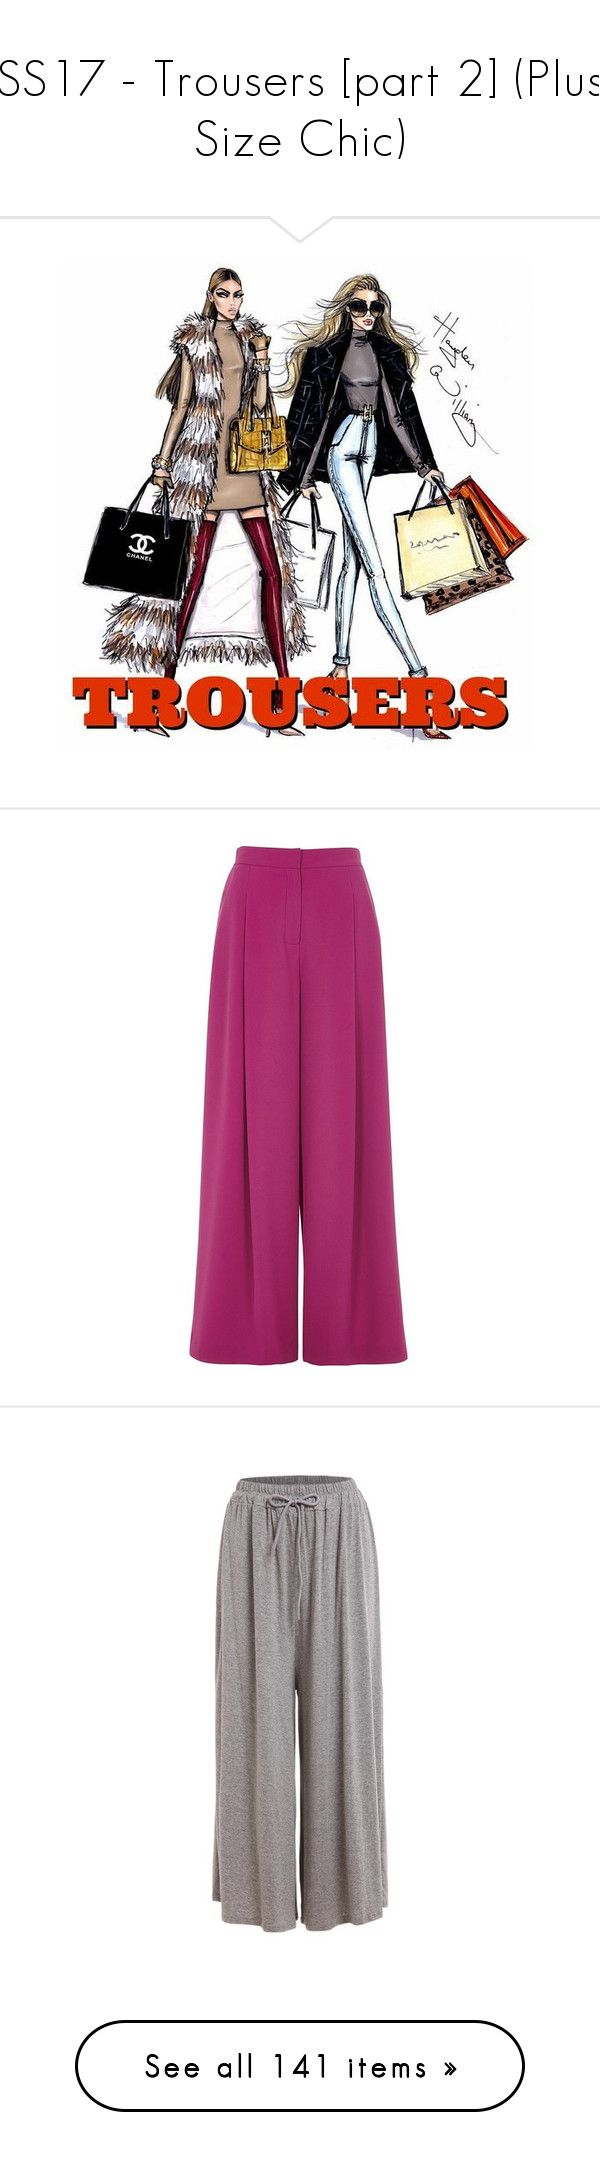 """""""SS17 - Trousers [part 2] (Plus Size Chic)"""" by foolsuk ❤ liked on Polyvore featuring pants, trousers, pink, wide leg pants, women, pink pants, pink wide leg pants, tall pants, river island and purple pants"""